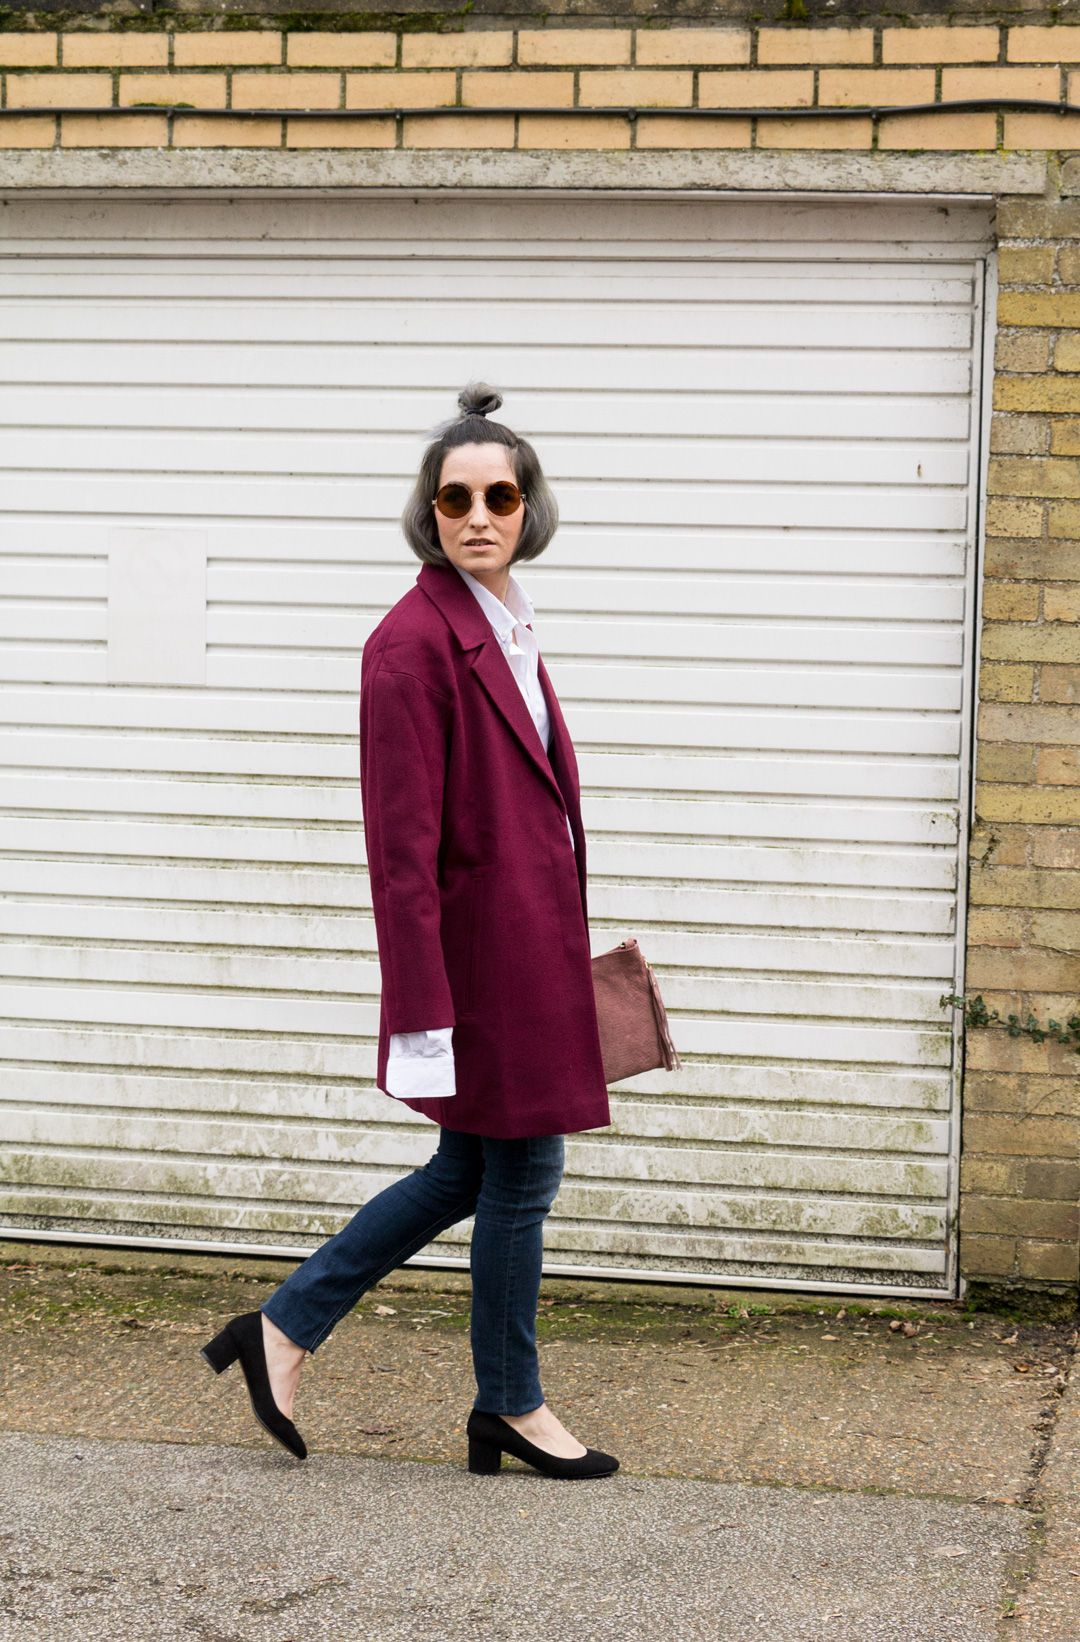 She talks Glam | Boyfriend Shirt | Oversized coat | Block Heels | Casual look